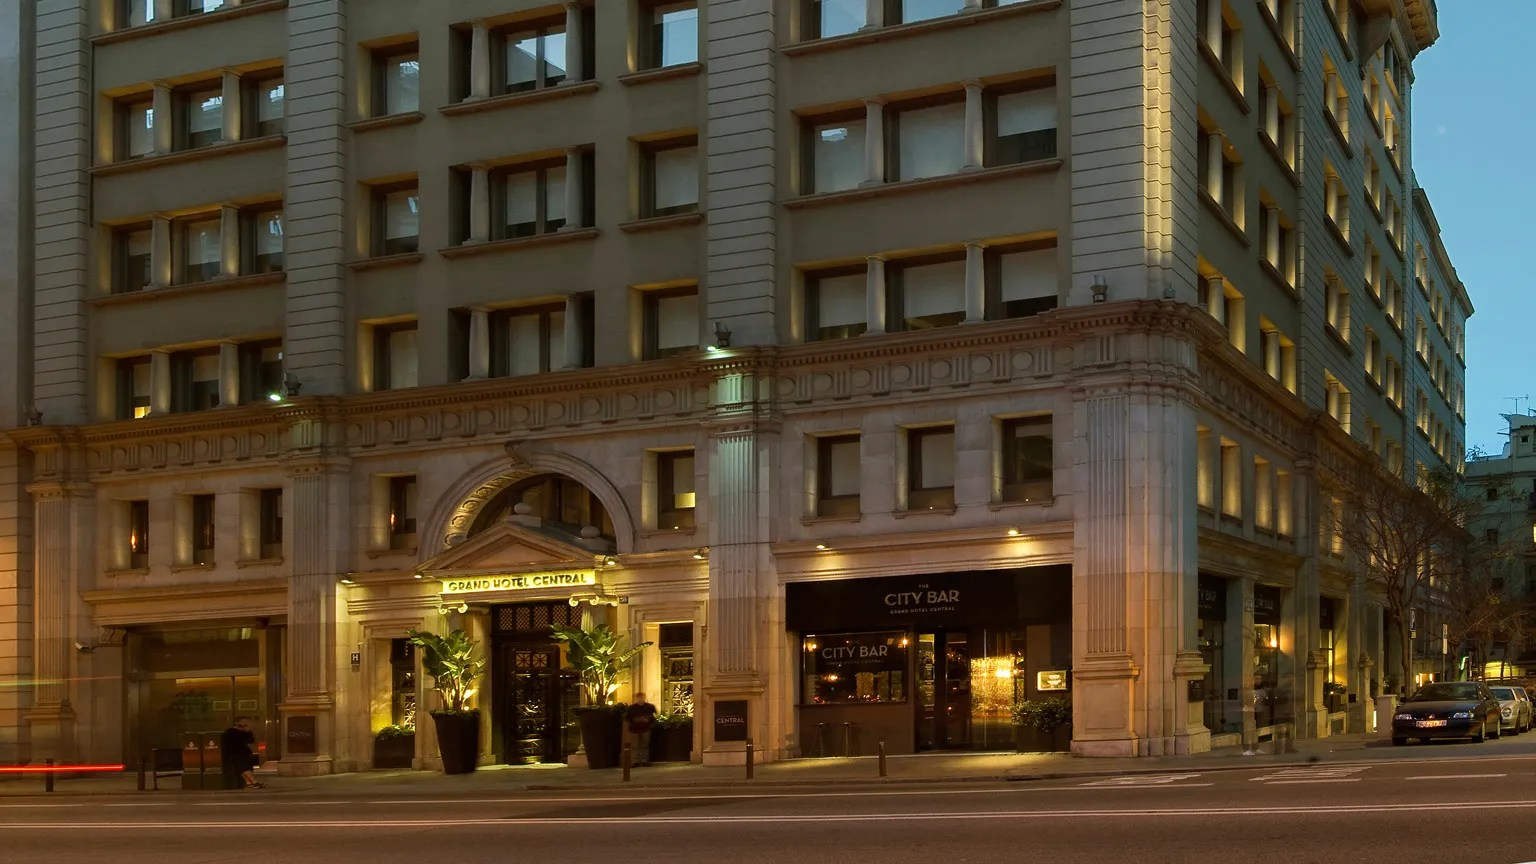 Grand Hotel Central Barcelona Grand Hotel Central - Hotel Review | Condé Nast Traveler